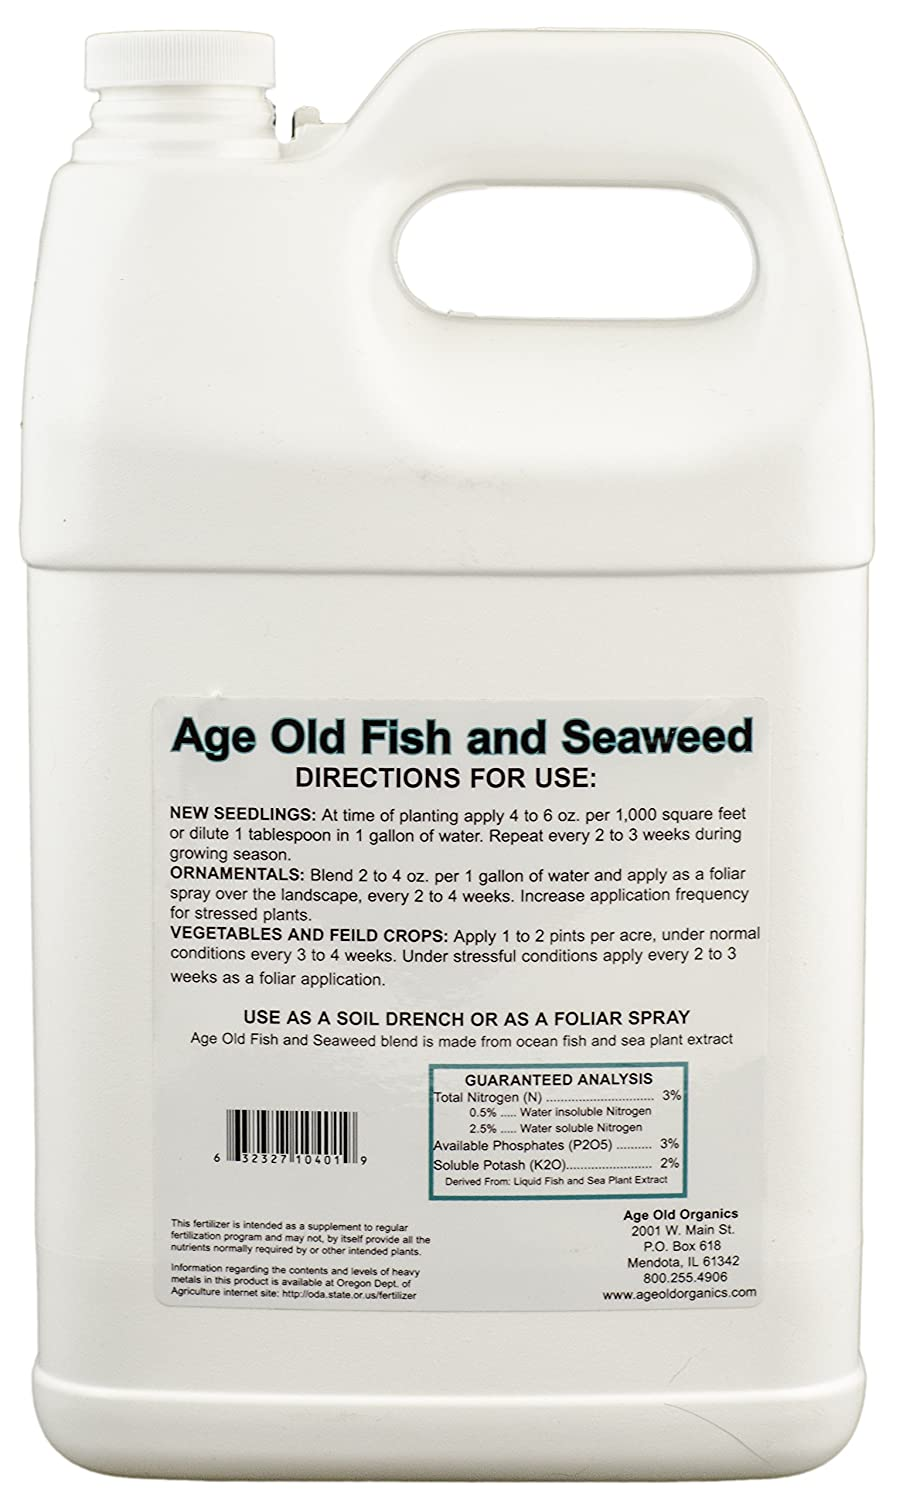 Age Old Fish and Seaweed Liquid Fertilizer, 32-ounce Bottle